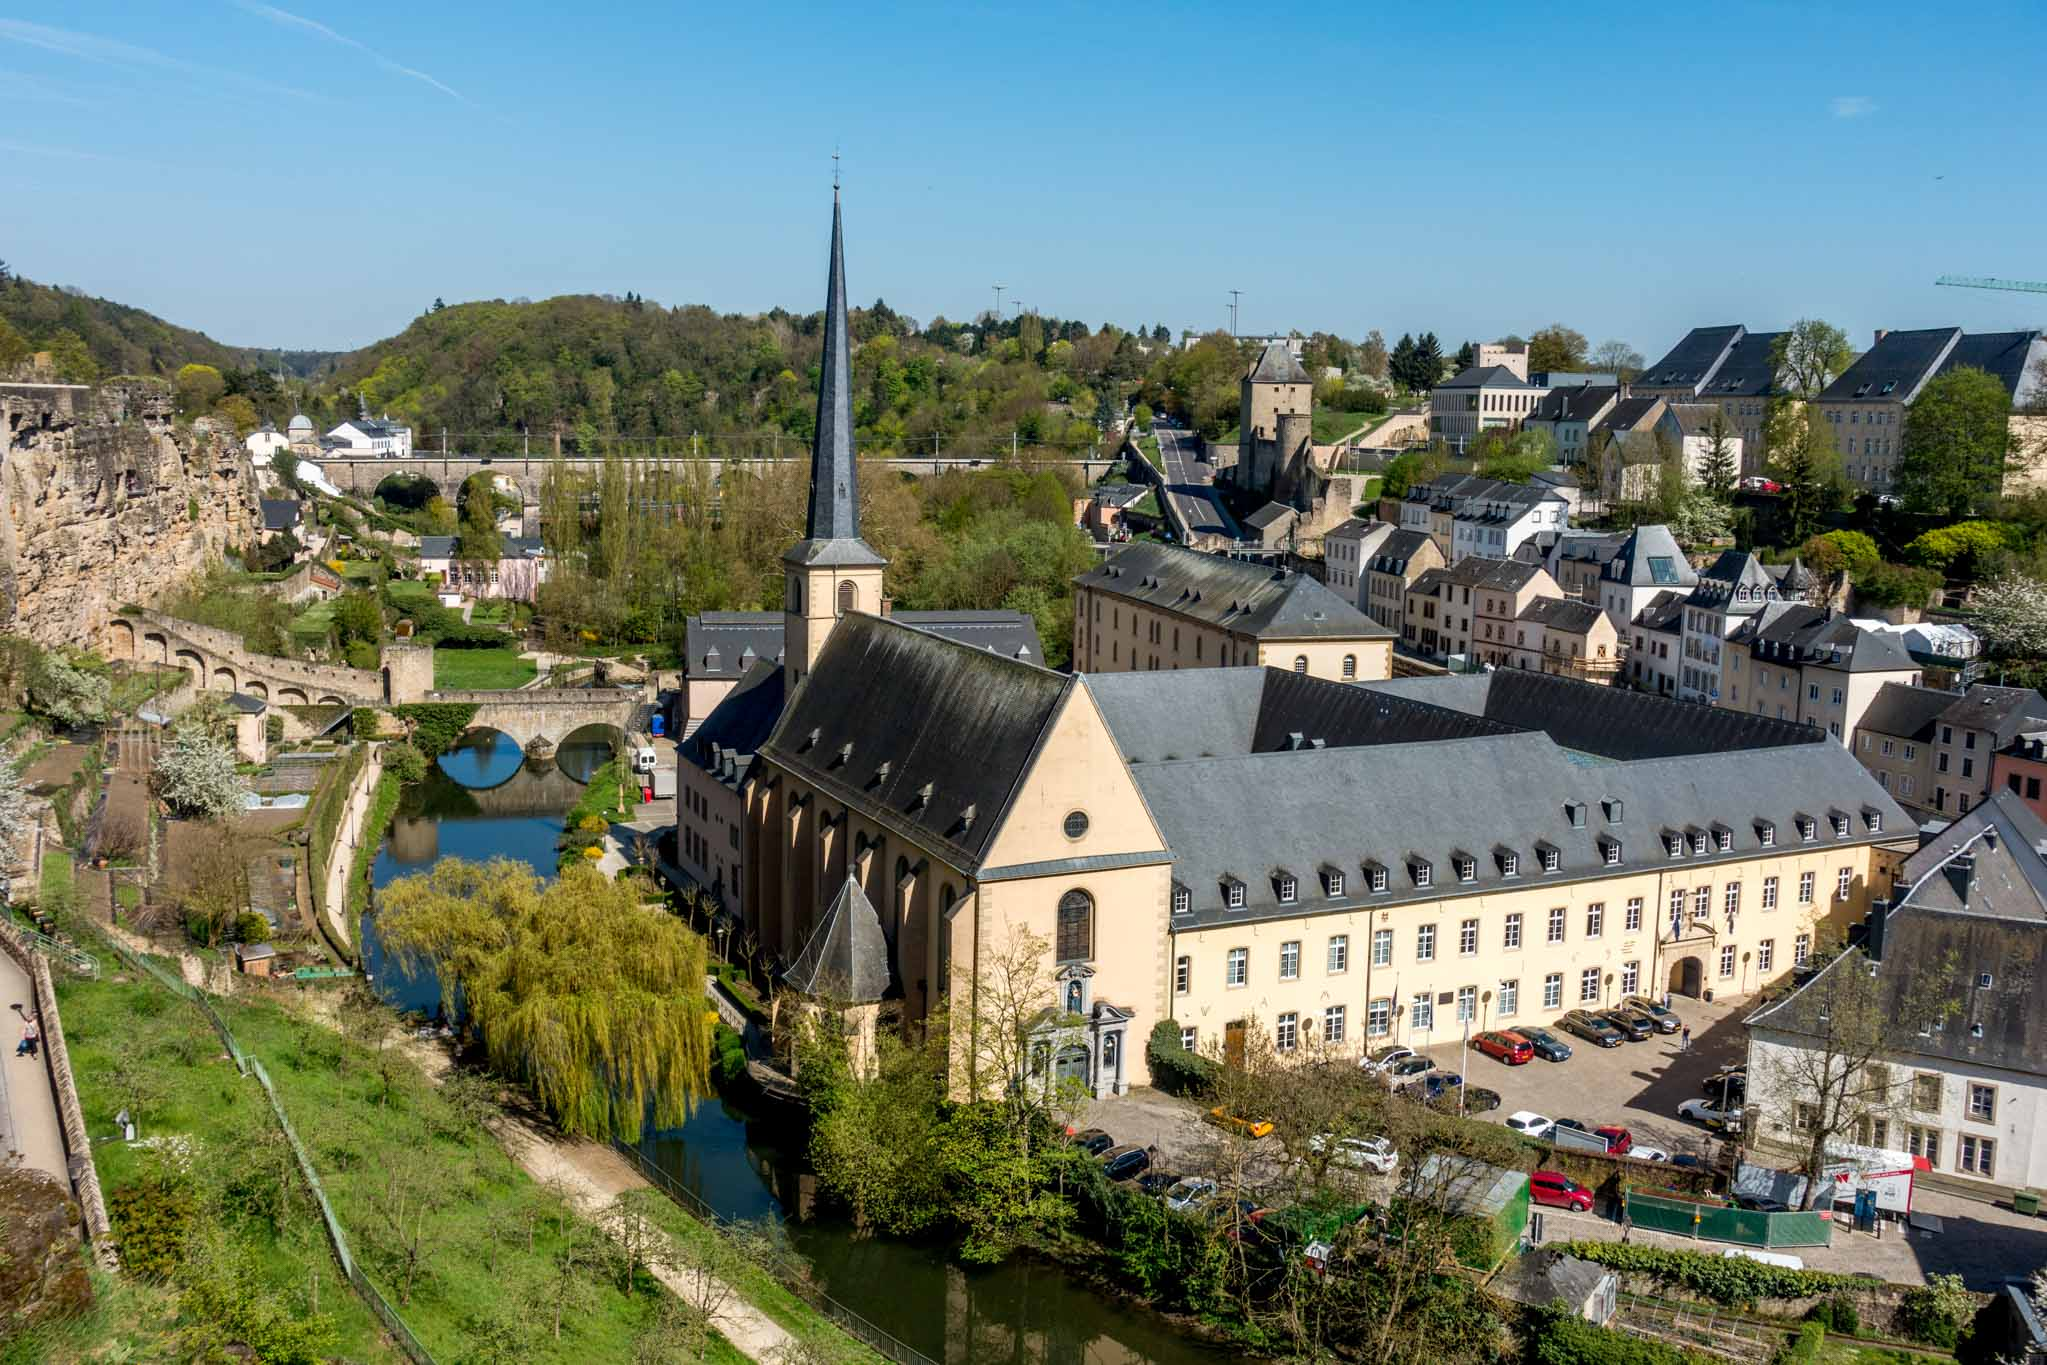 View of buildings and river in a valley in Luxembourg City